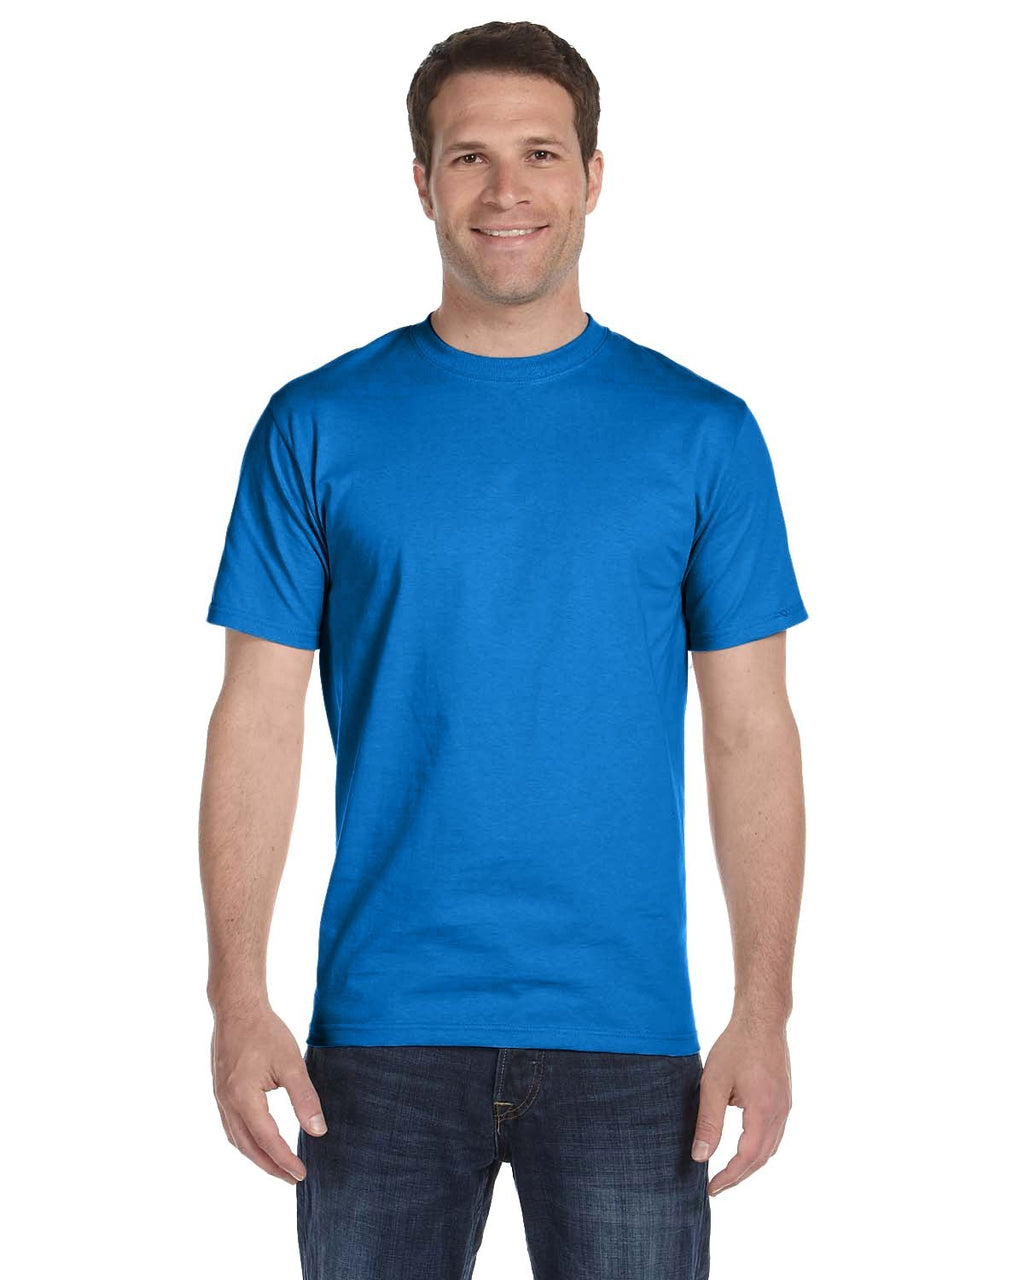 Hanes Beefy-T® T-Shirt Adult 6.1 oz.